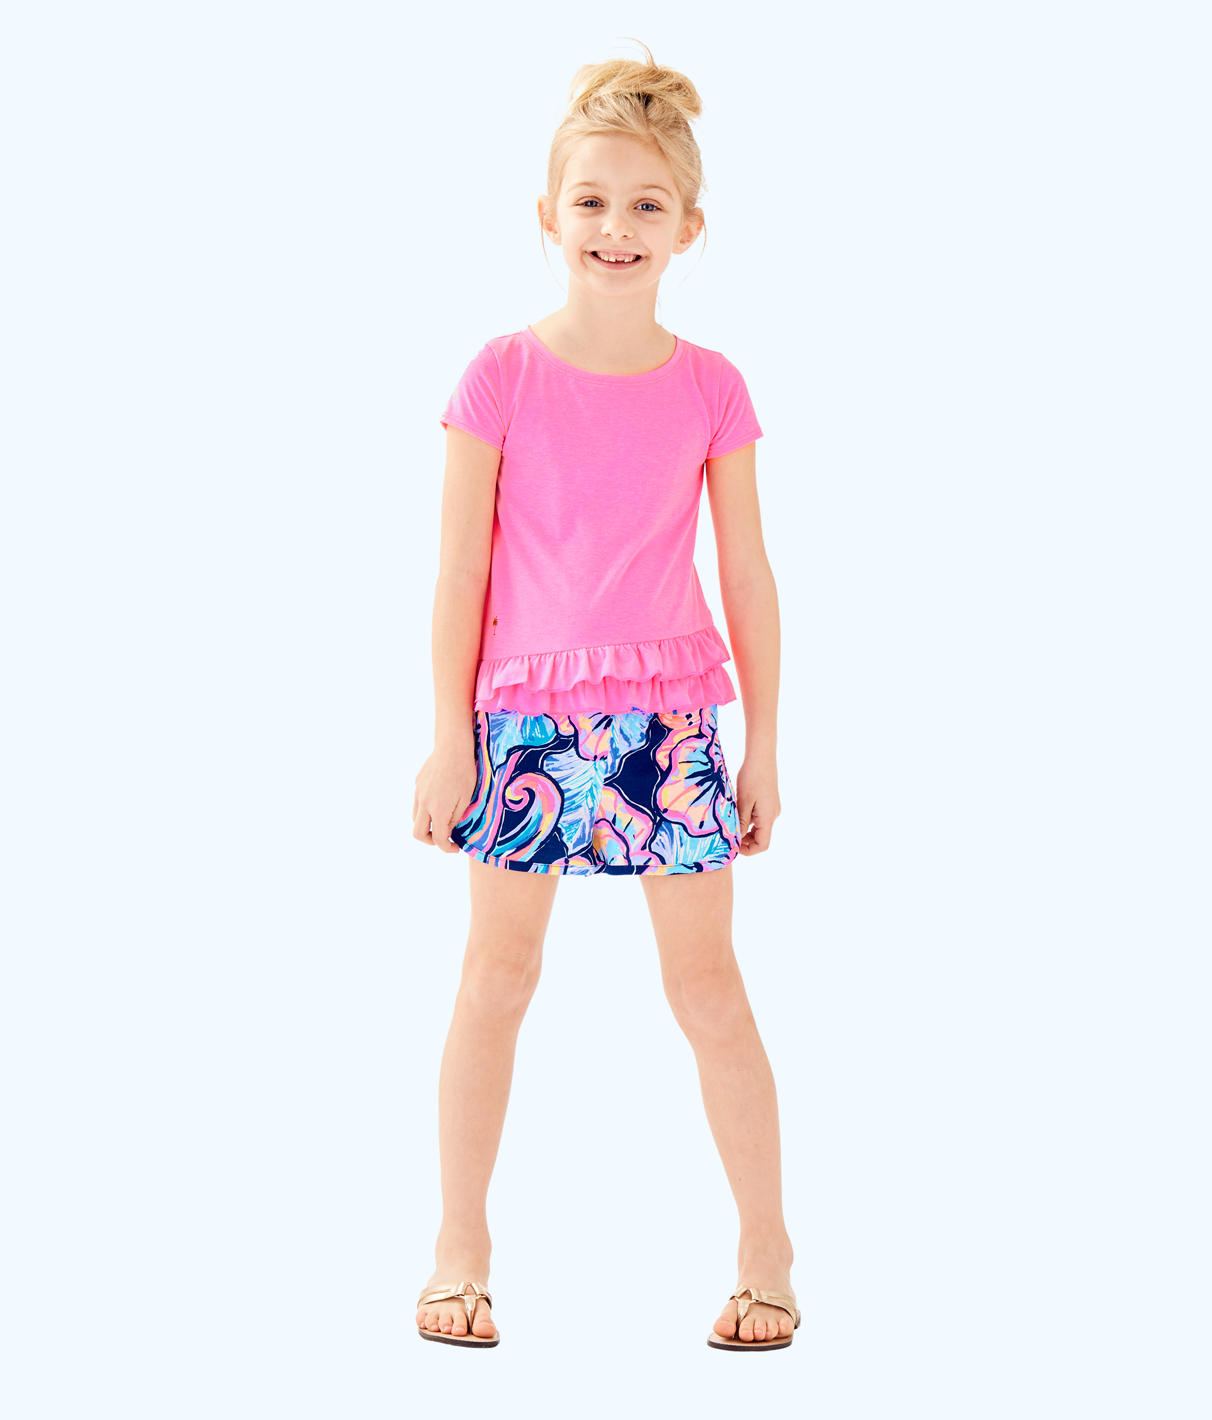 Lilly Pulitzer Lilly Pulitzer Girls Leightan Top